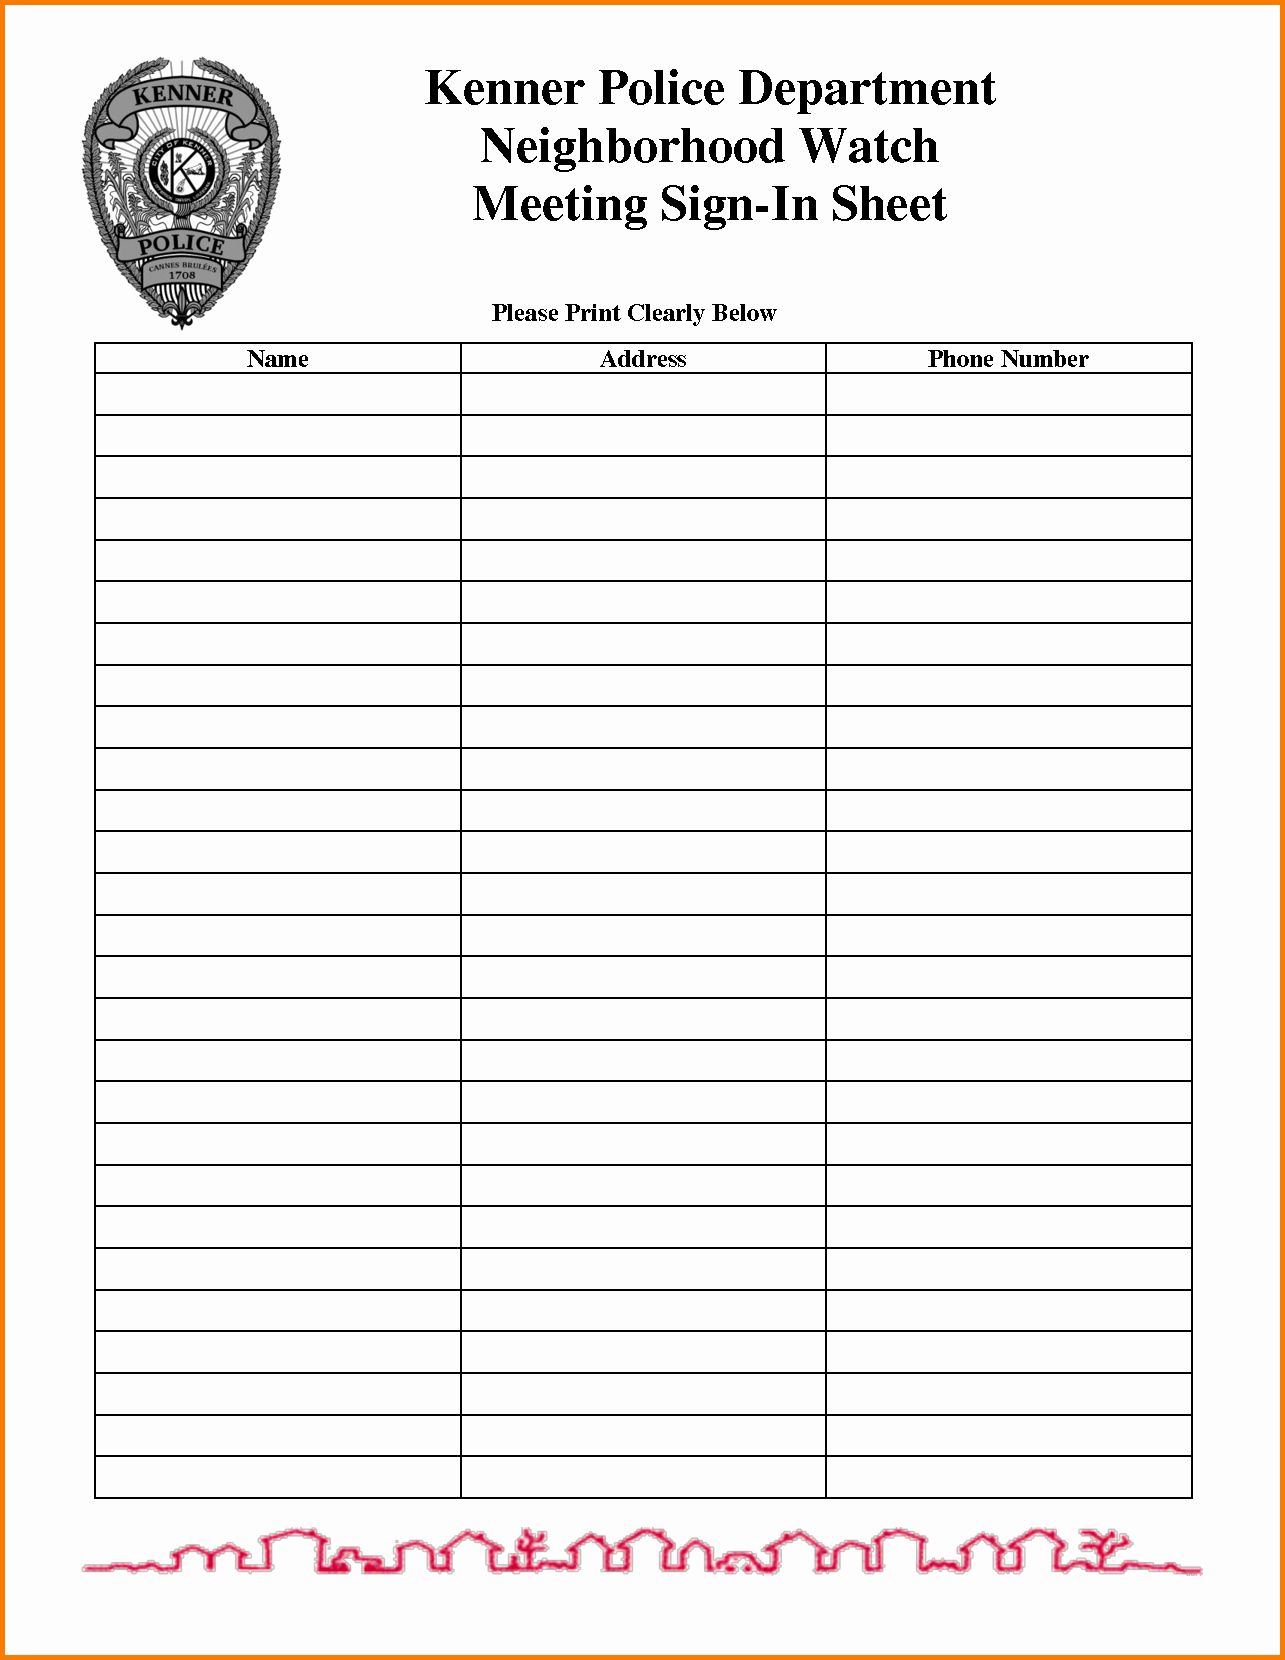 Appointment Sign In Sheet Template Lovely Meeting Sign In Sheet Template